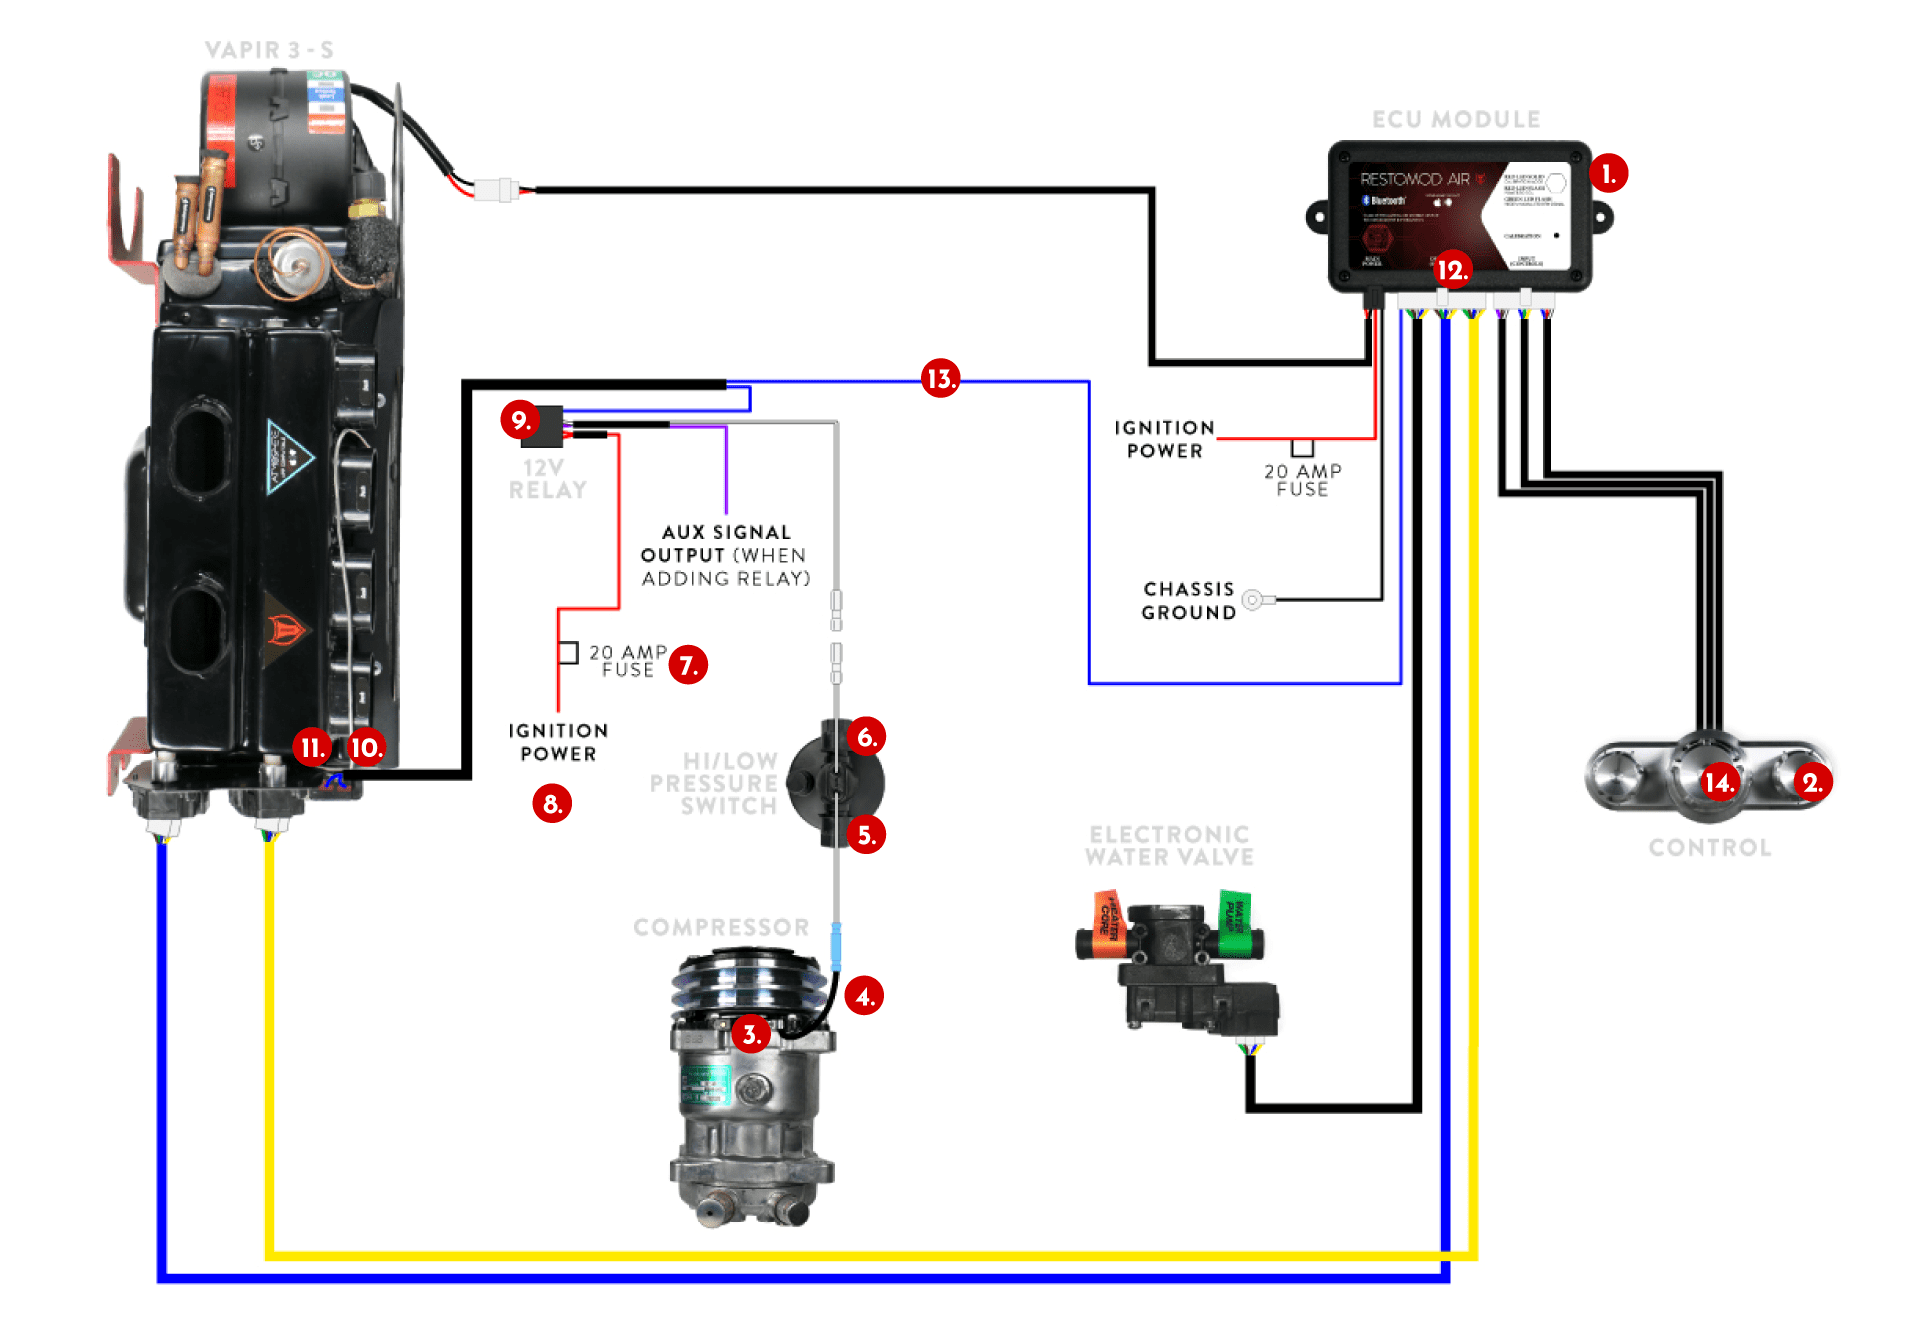 SYSTEM NOT COOLING SUPPORT PAGE VAPIR 3 S